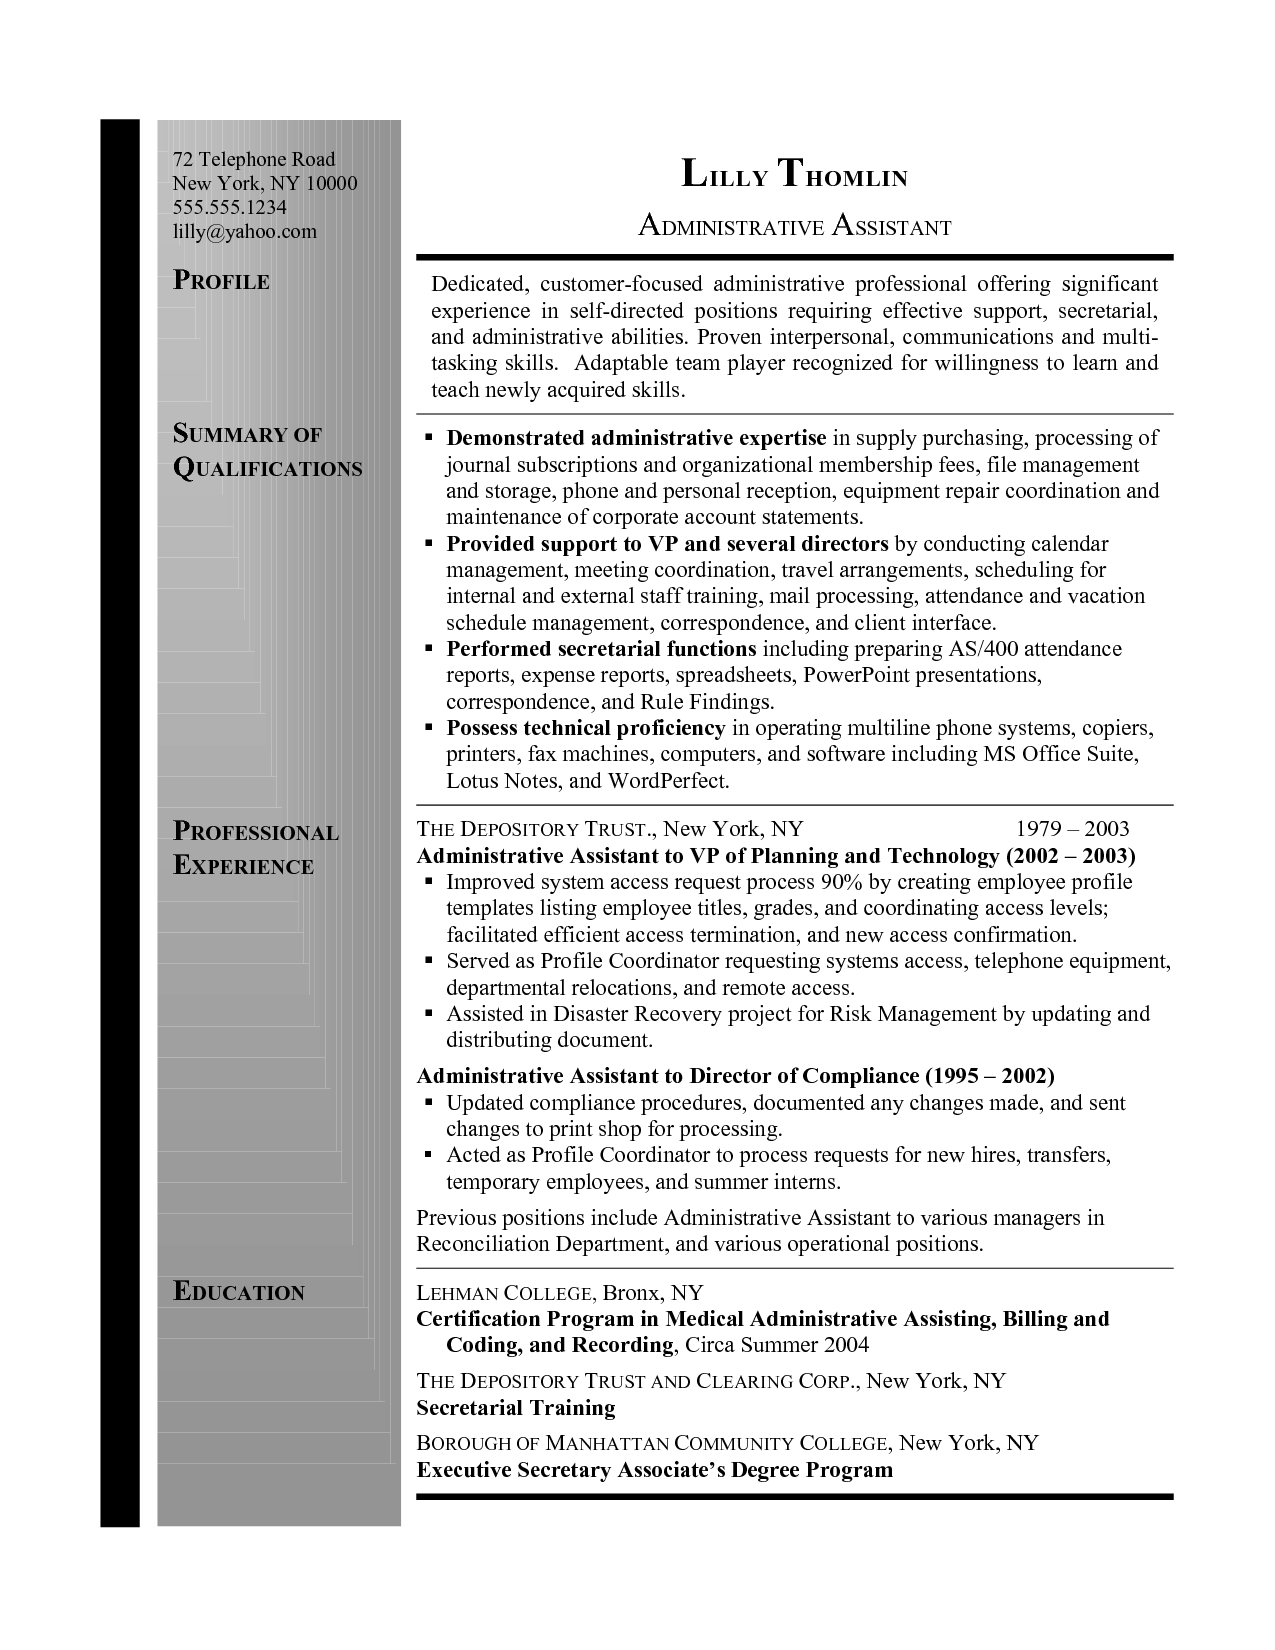 Delightful Resume Summary Administrative Assistant To Administrative Assistant Summary